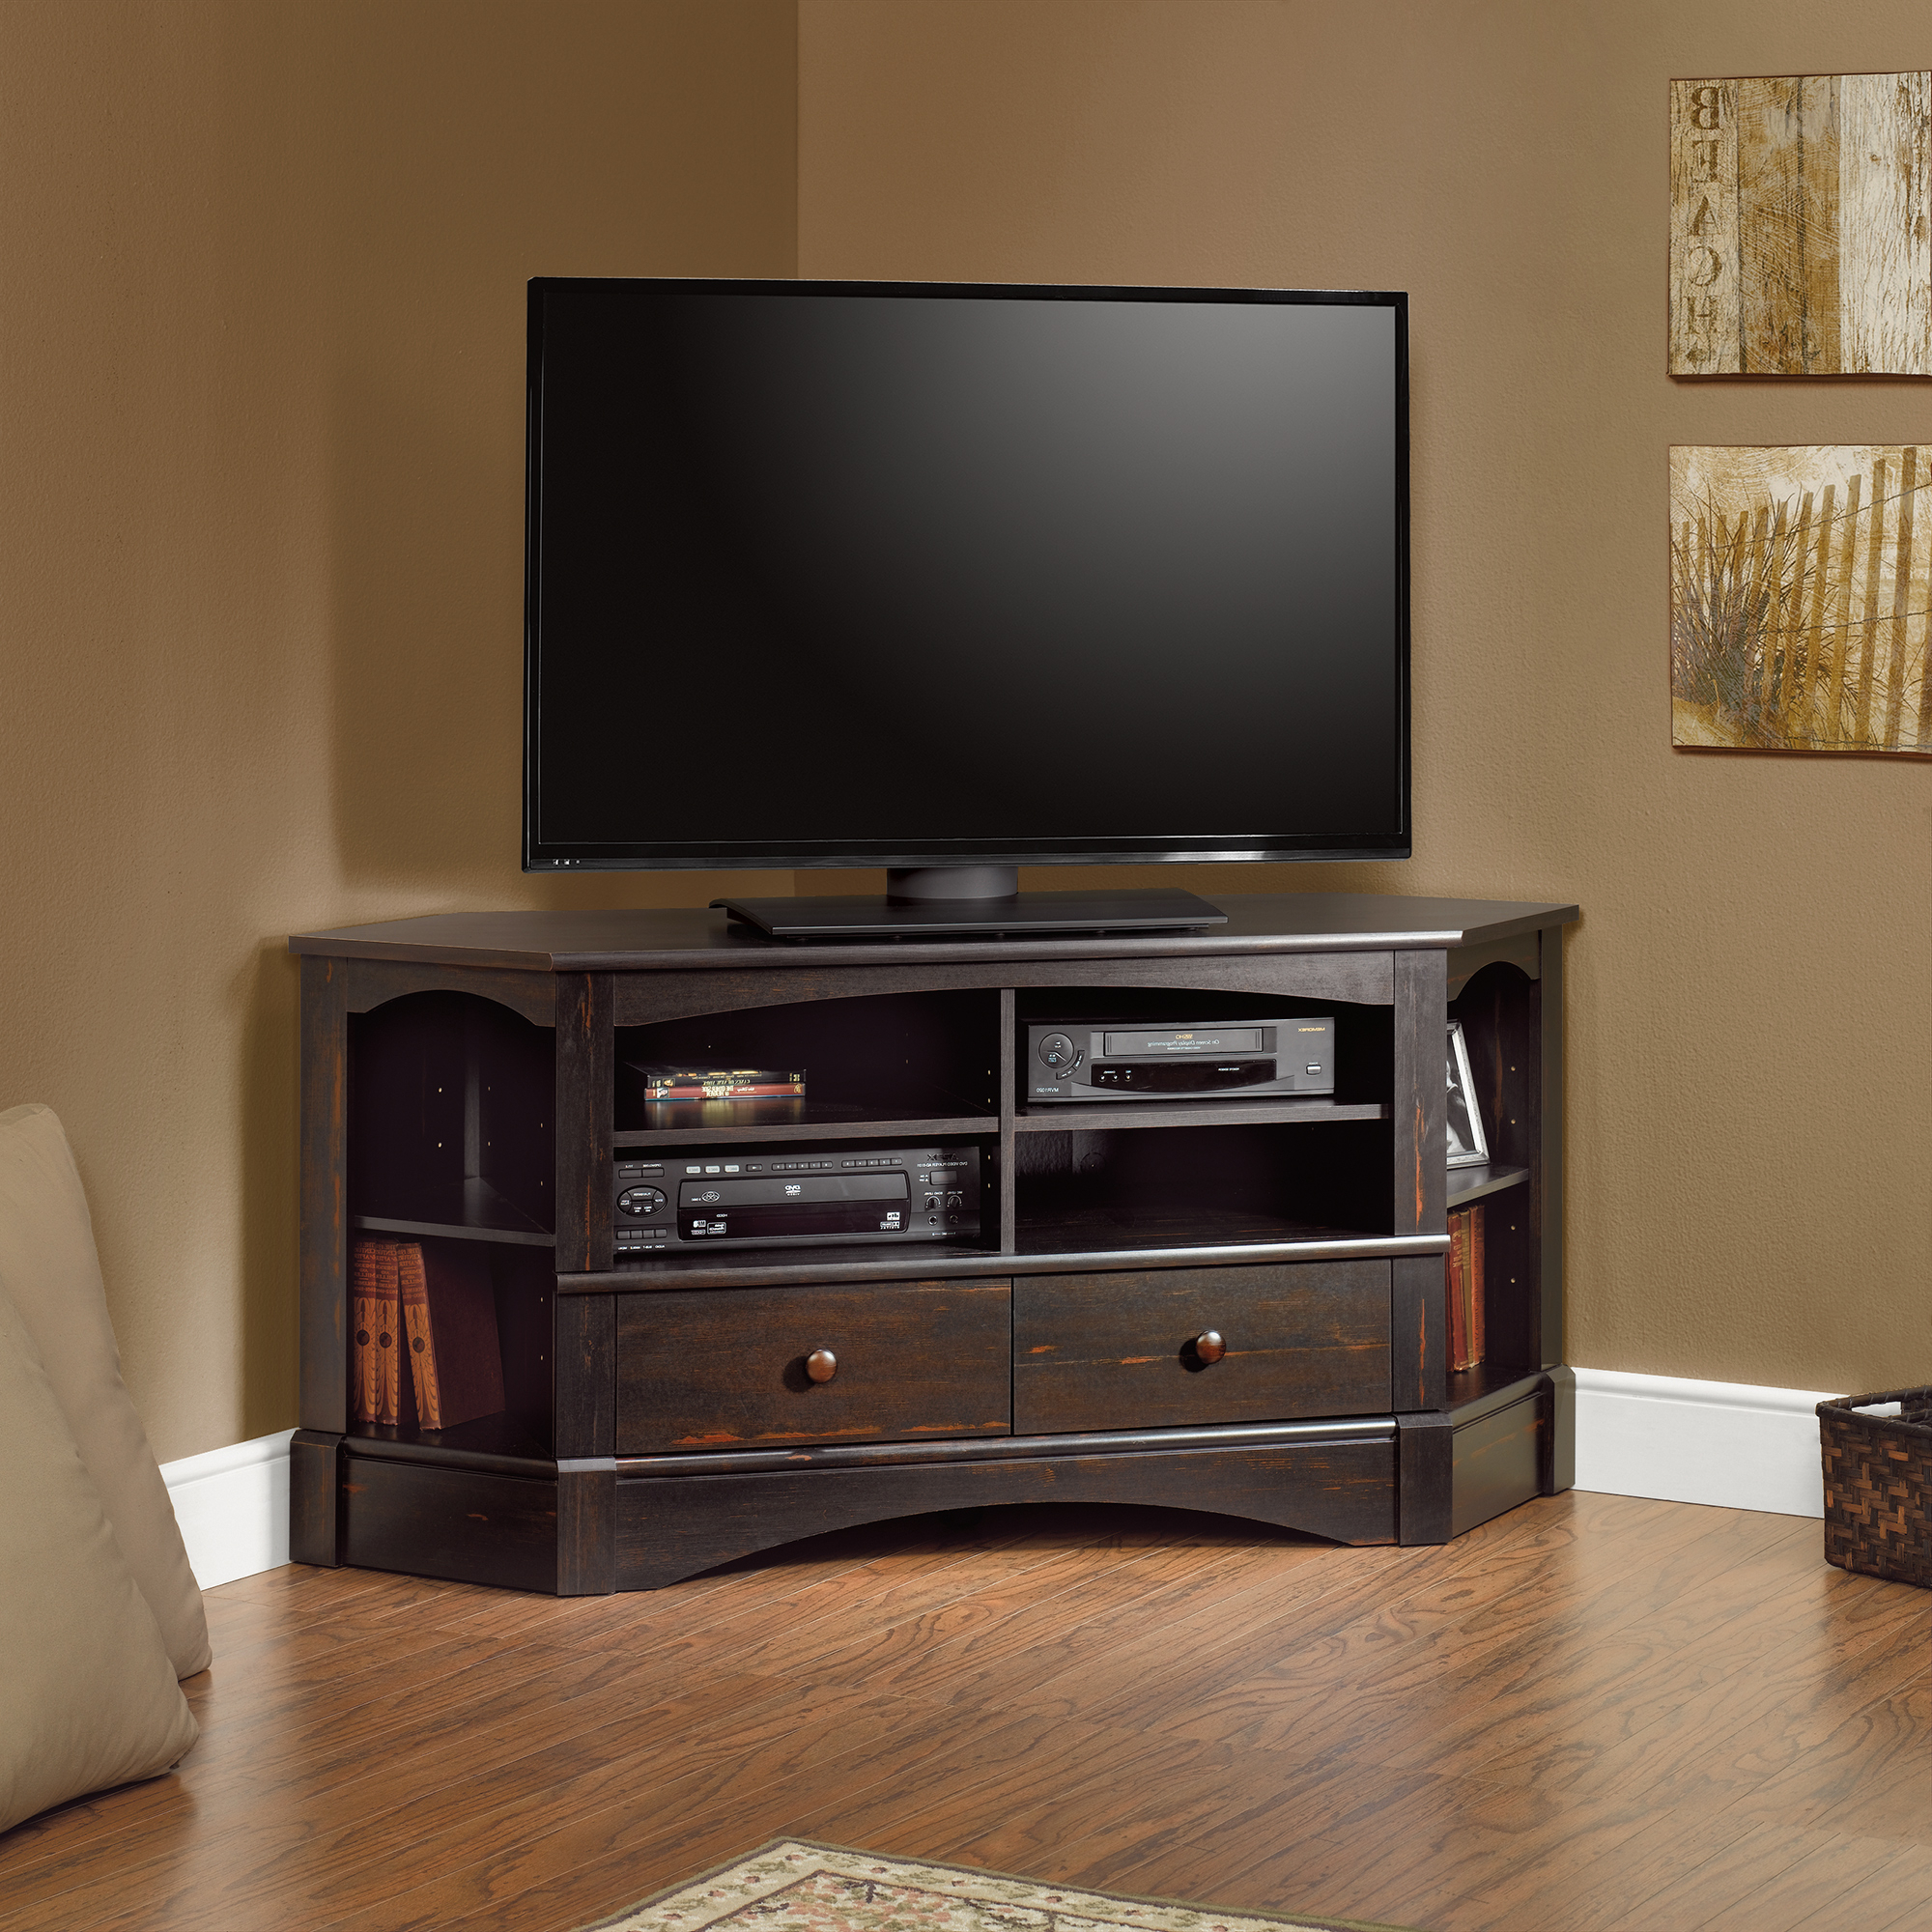 Corner Entertainment Credenza (View 4 of 20)